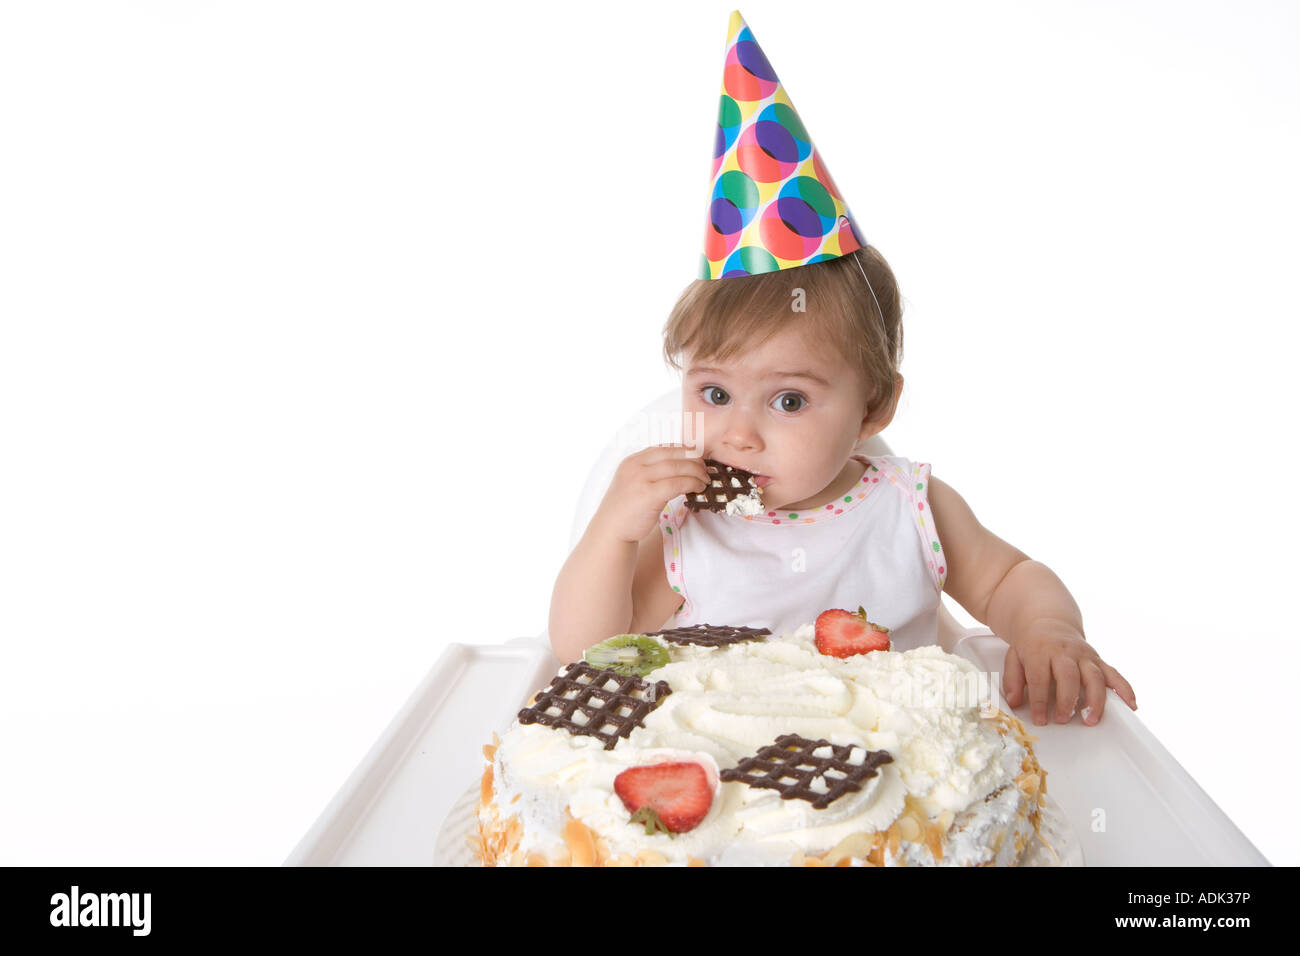 One Year Old Baby Girl Eating From Her Birthday Cake